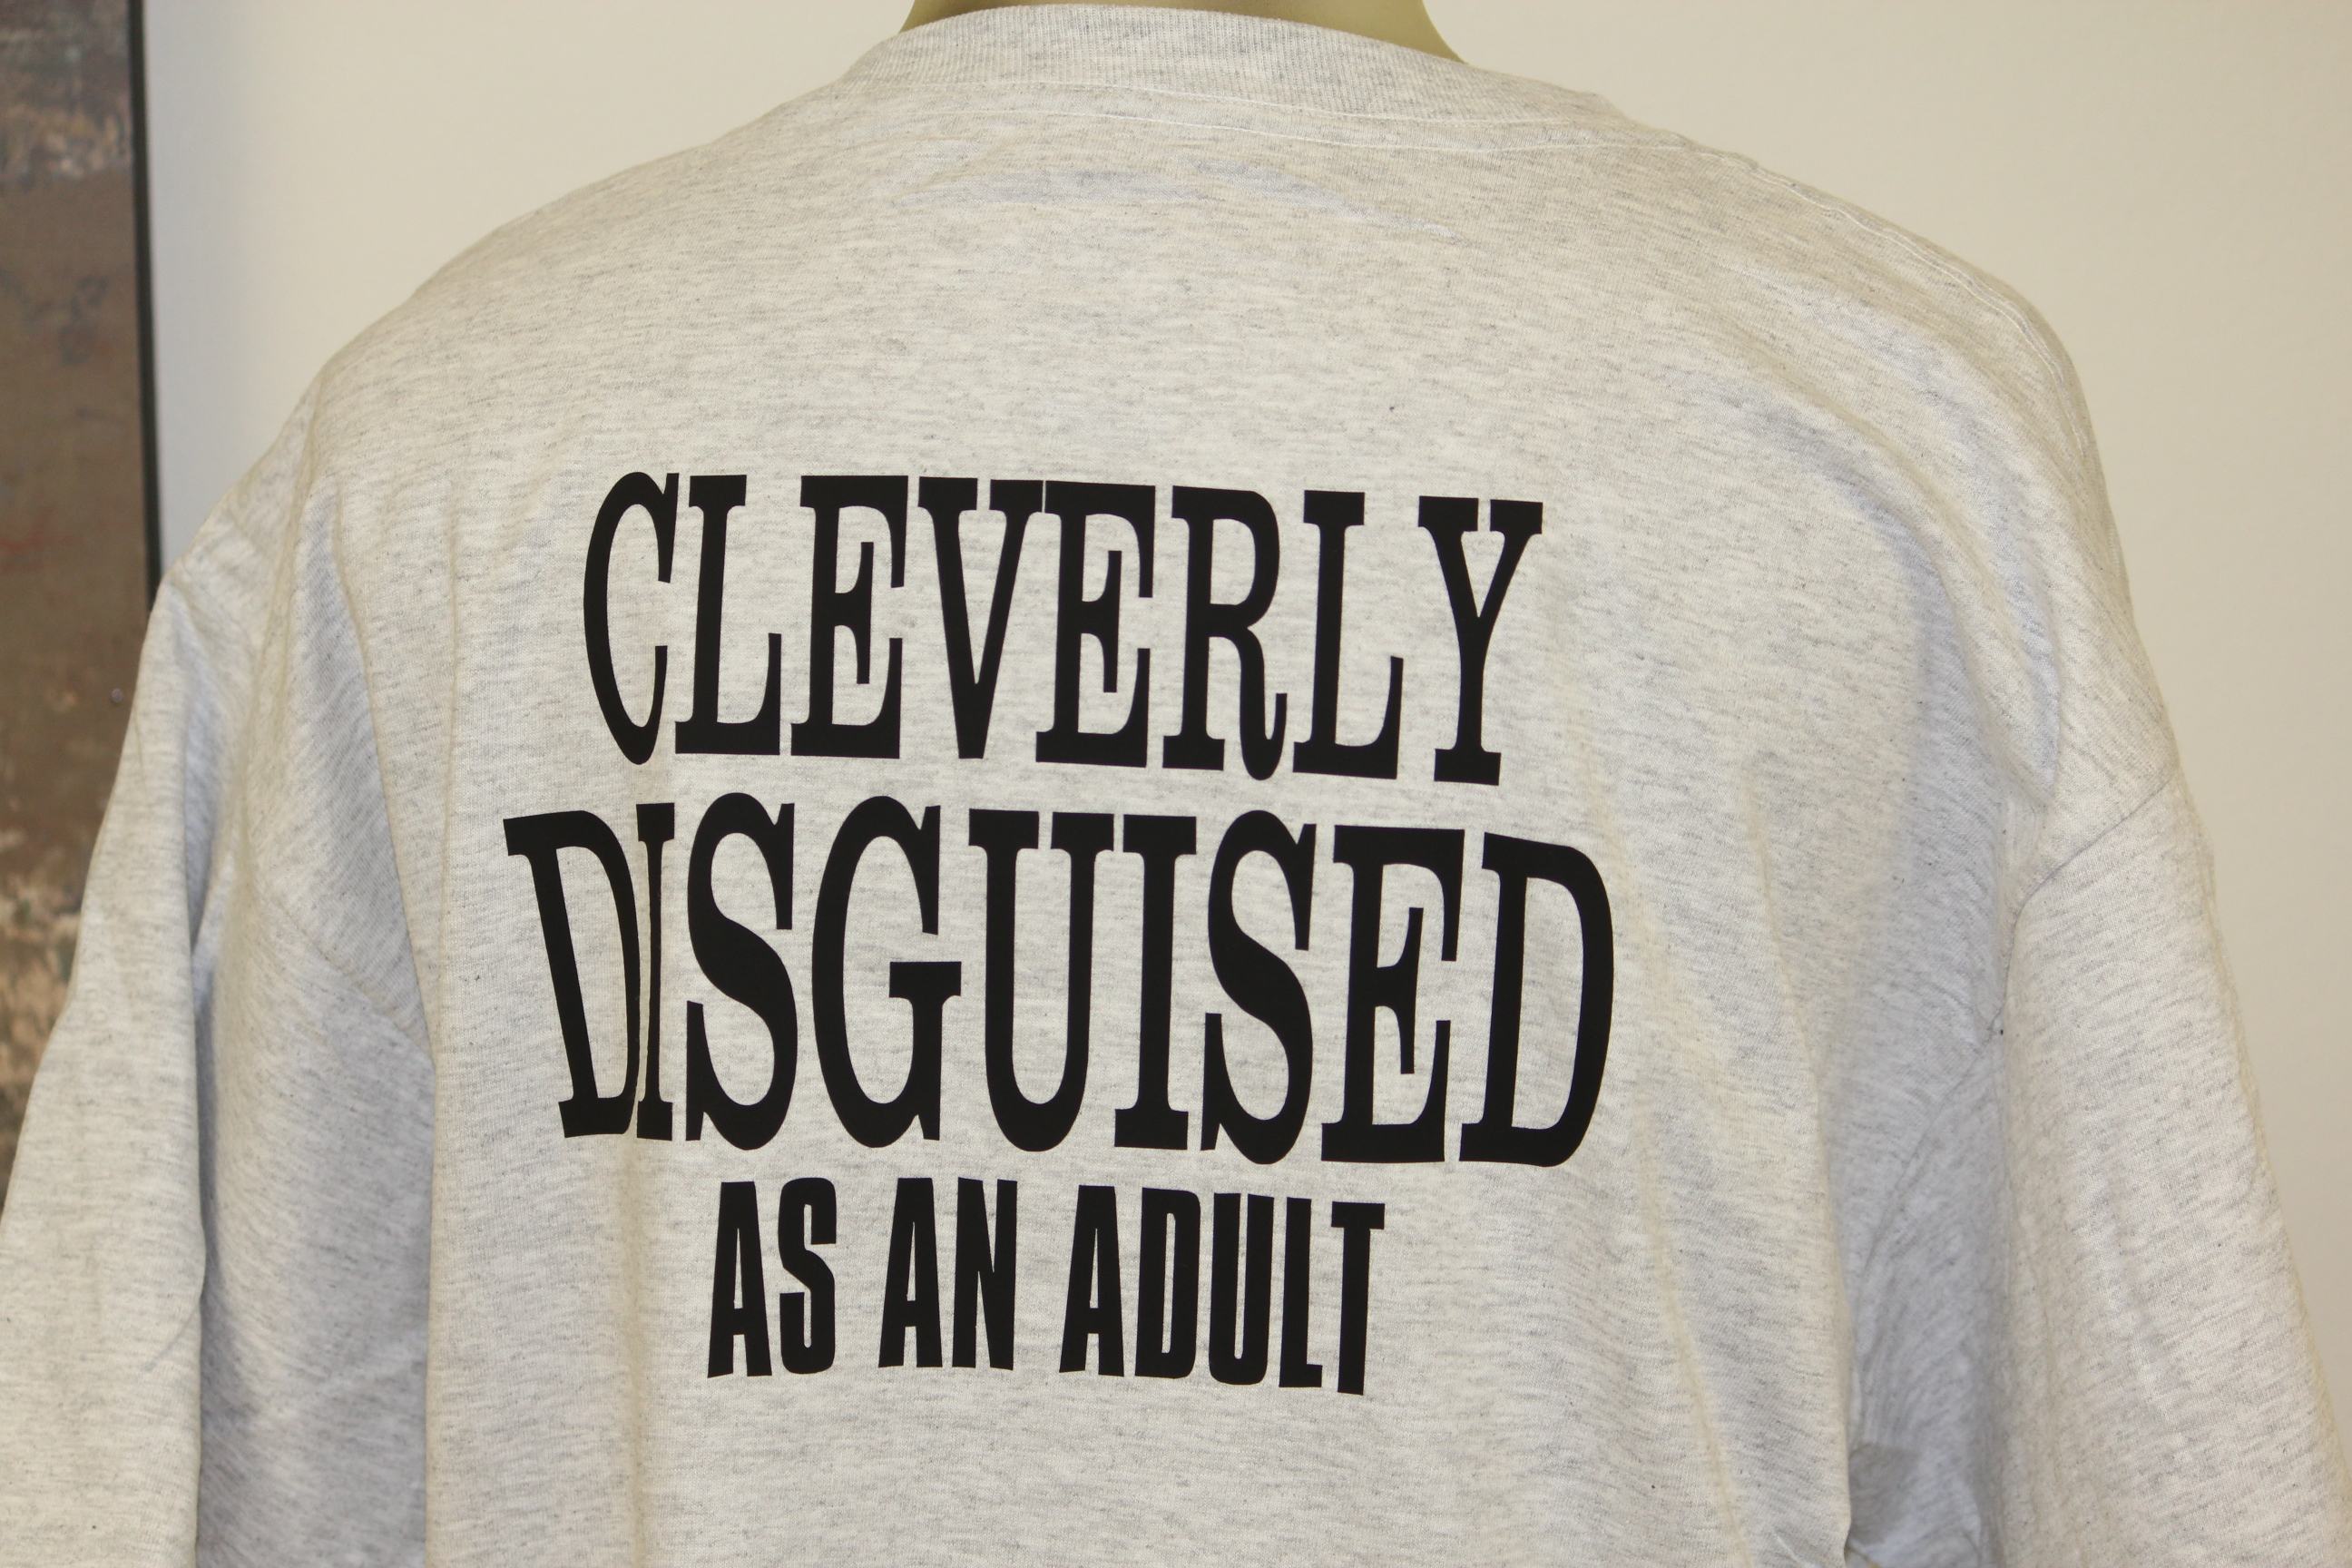 cleverly-diguised-as-an-adult-biker-t-shirts.jpg